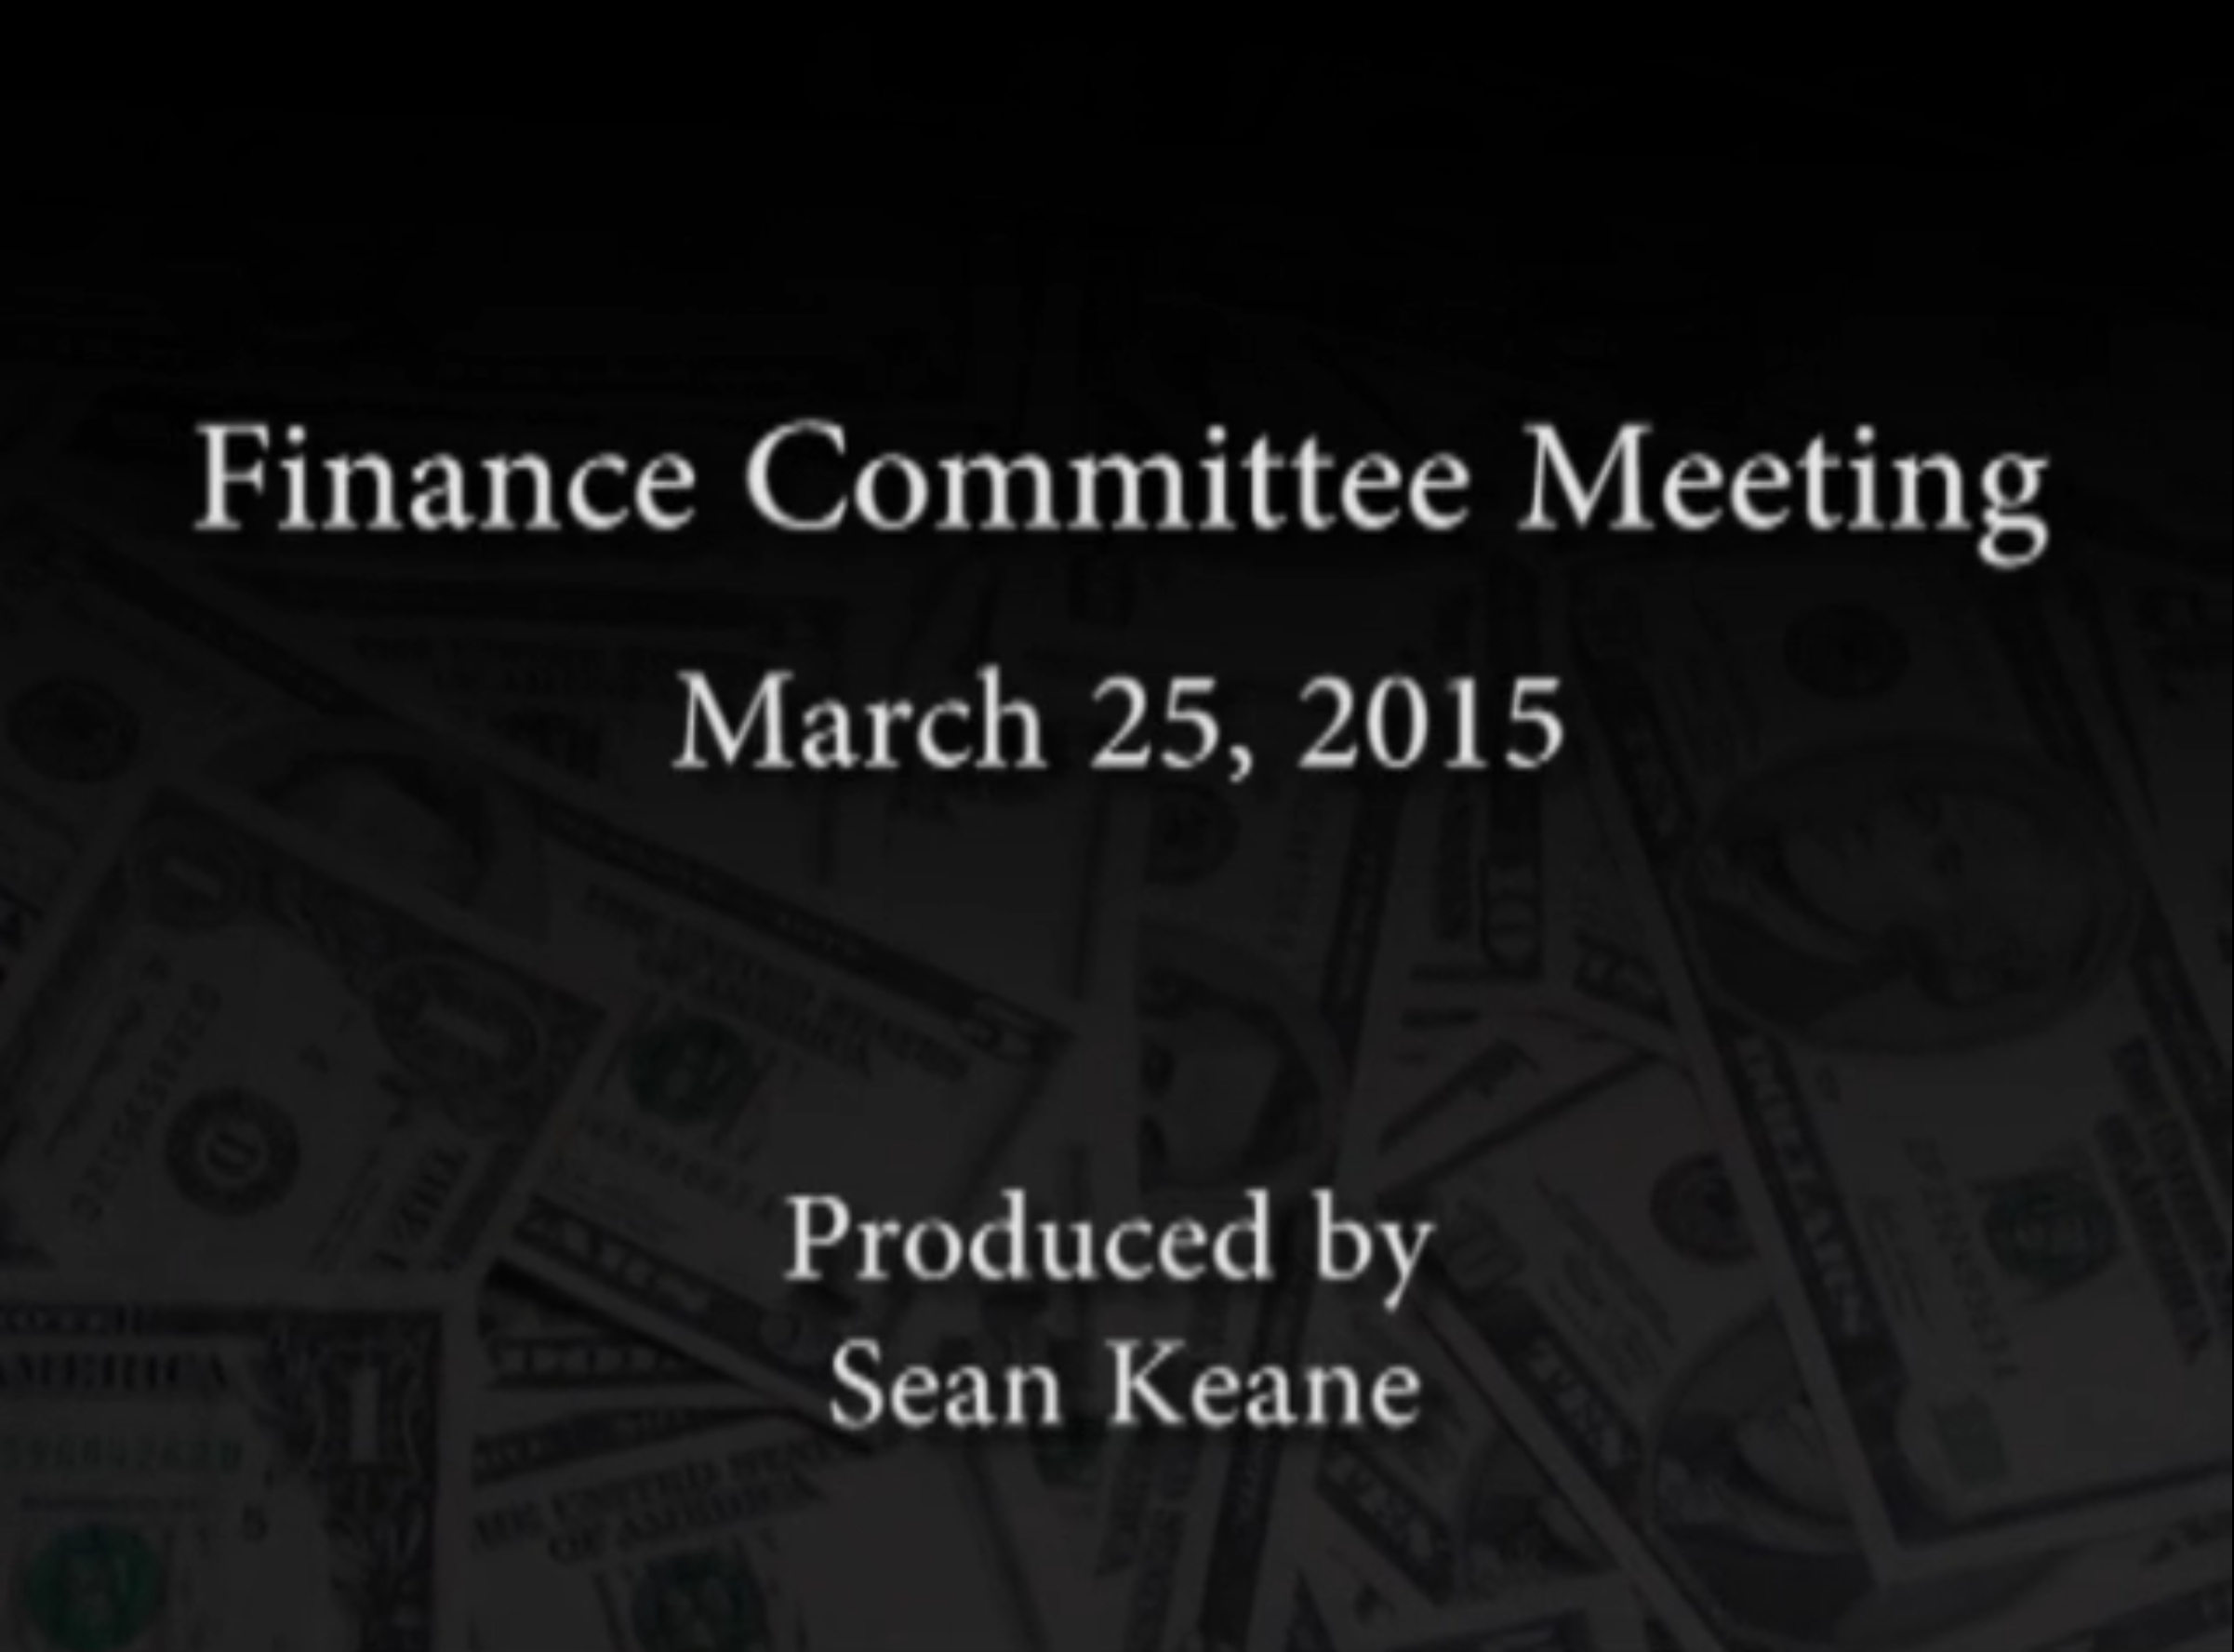 Finance Committee Meeting – March 25, 2015